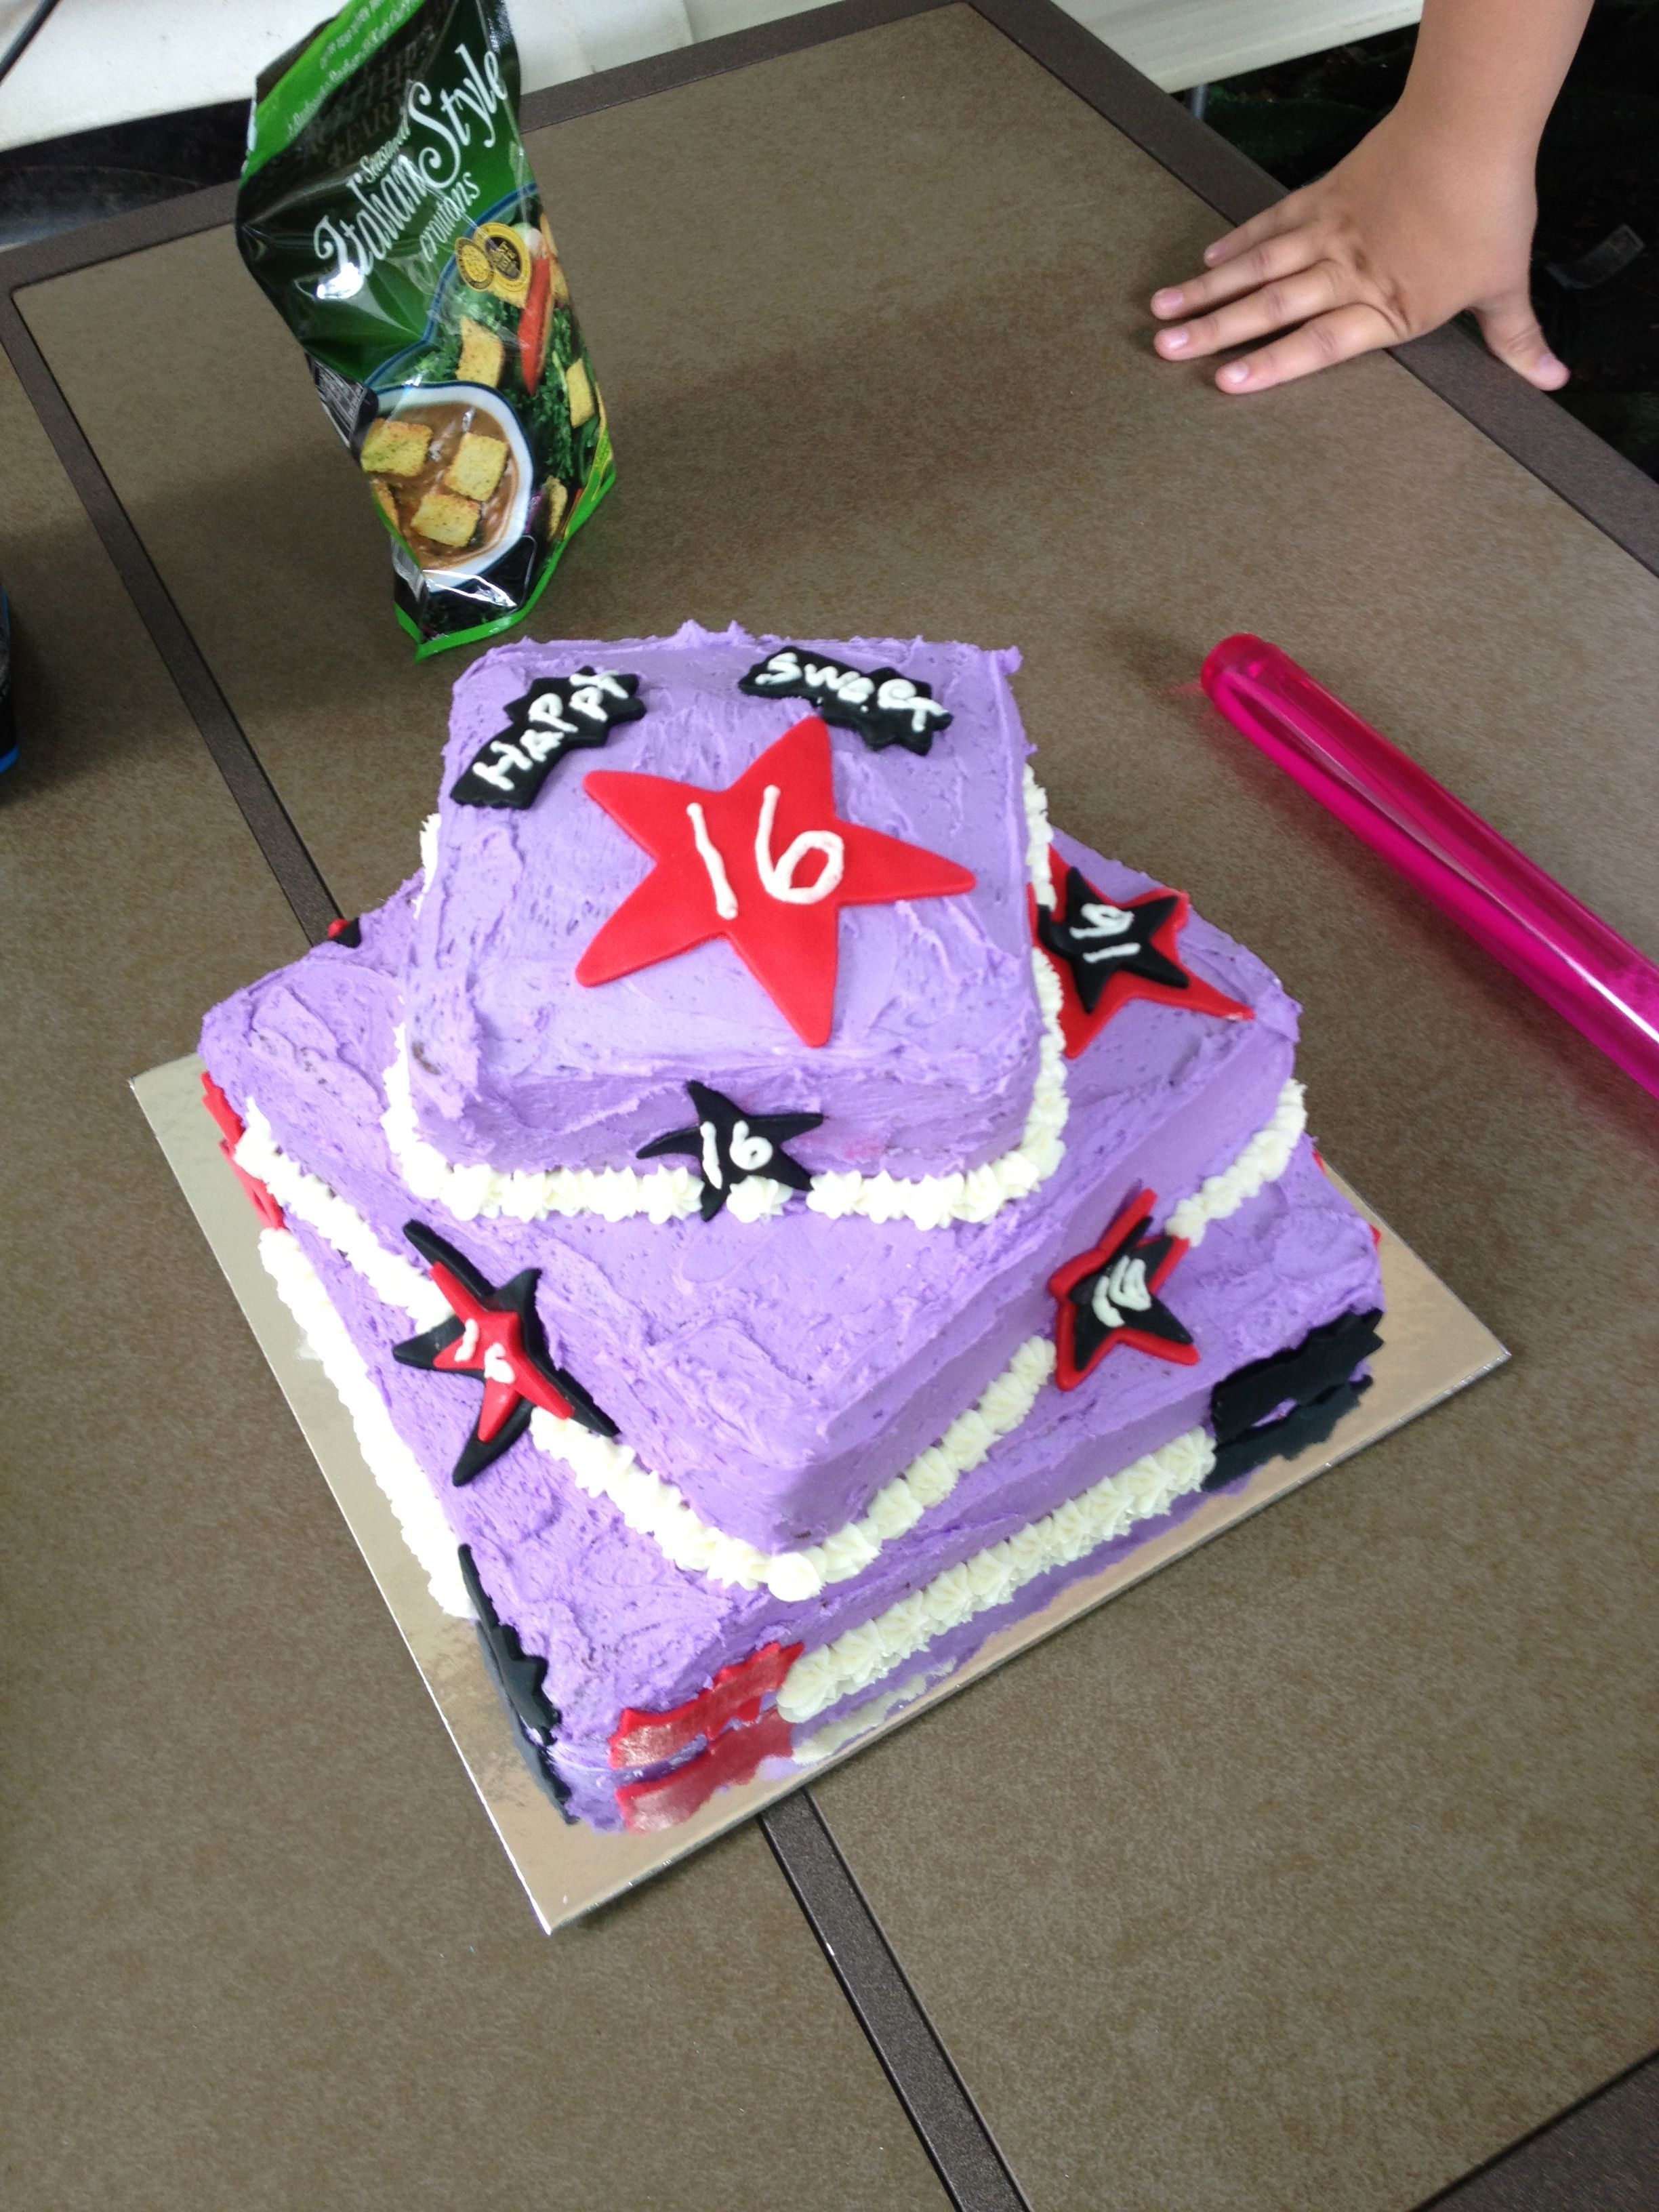 Cake Ideas For A 16th Birthday Party : 16th Birthday Cake 16th Birthday Party Ideas Pinterest